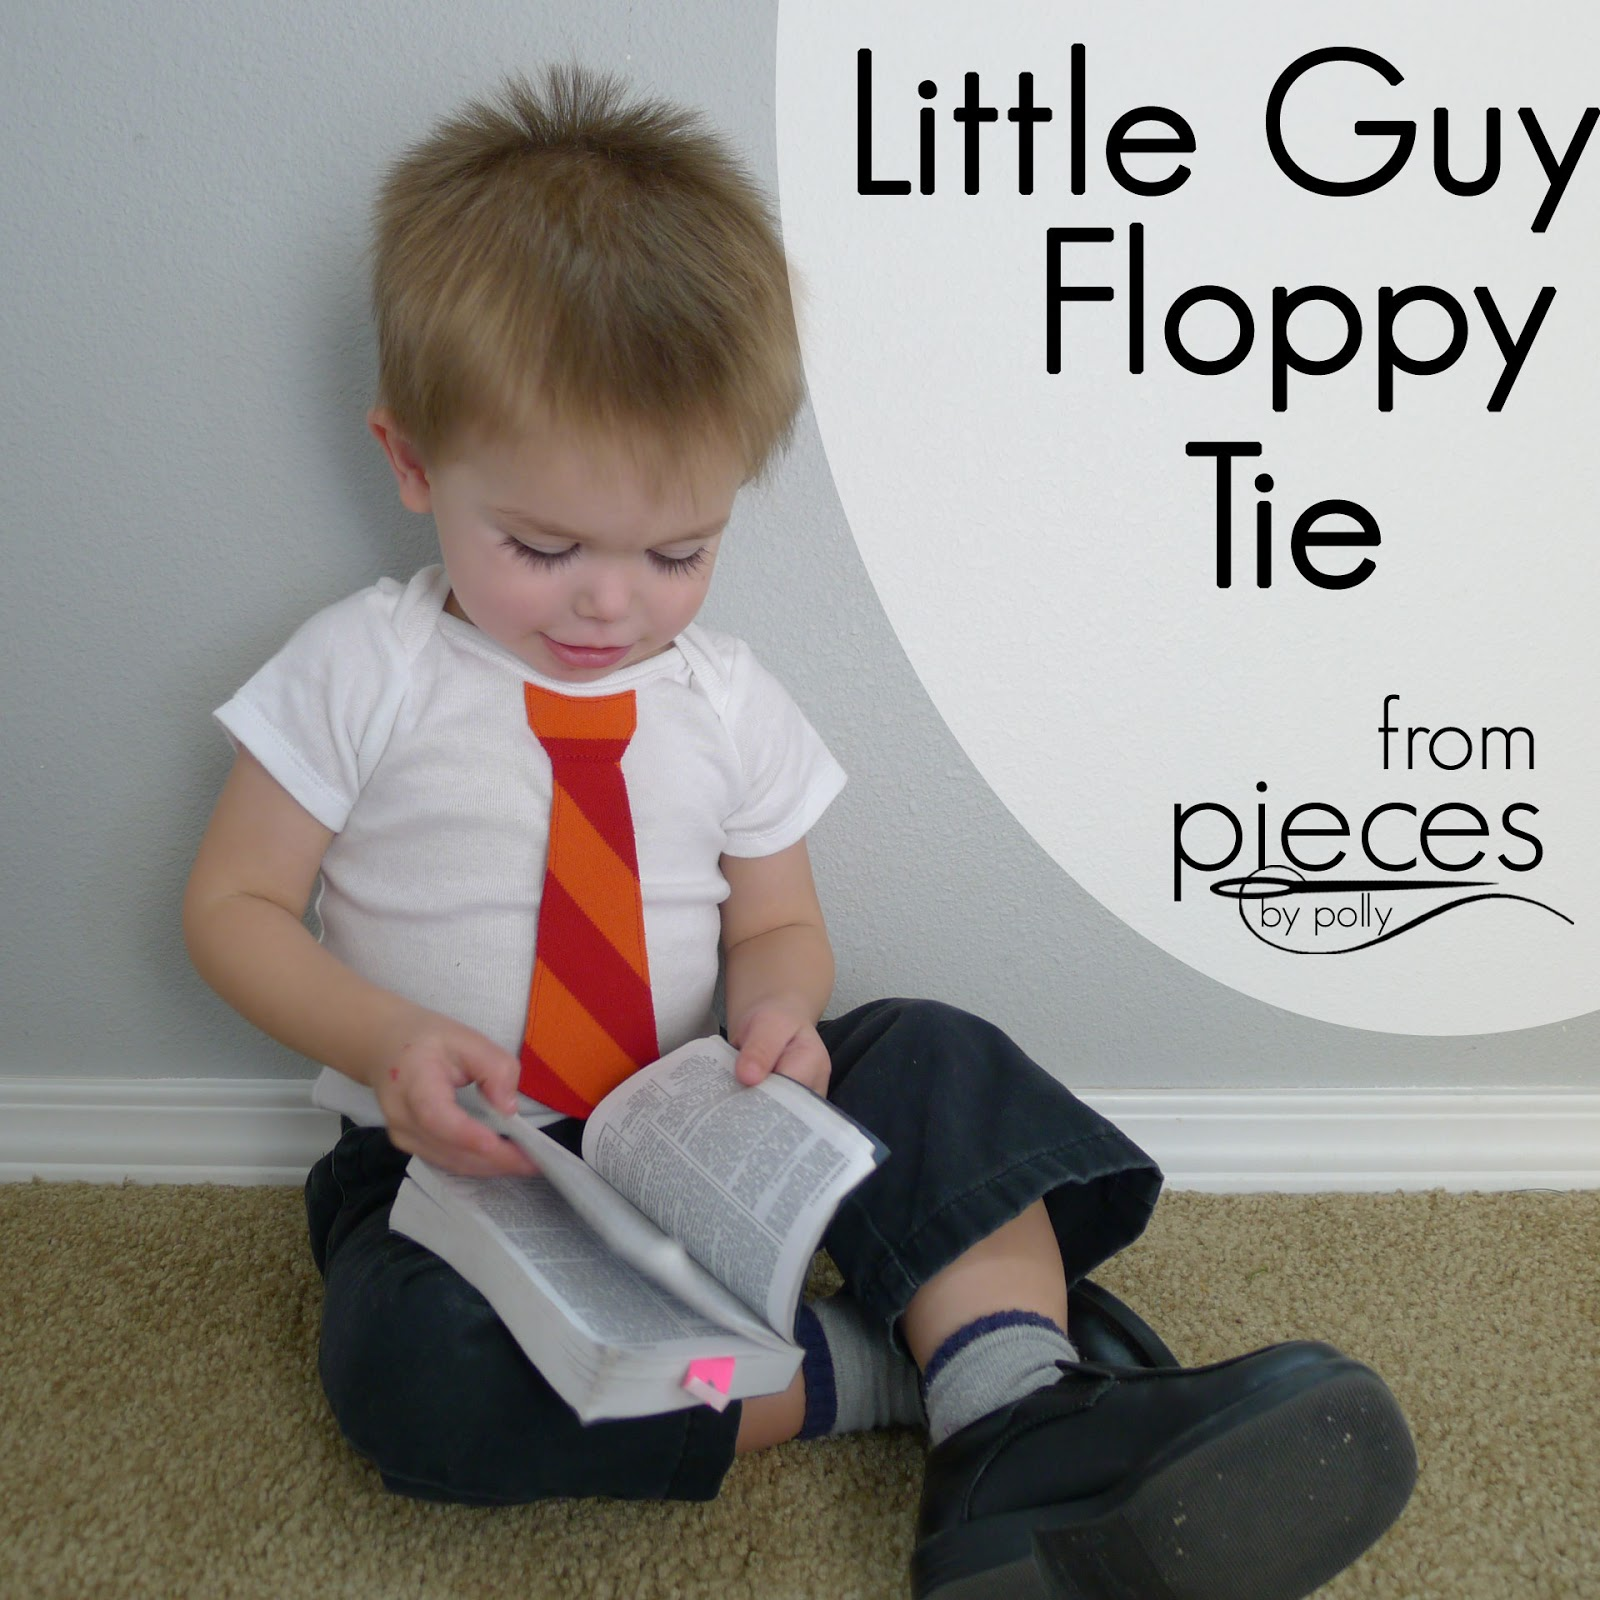 http://somedaycrafts.blogspot.com/2014/03/crafting-for-baby-little-guy-floppy-tie.html